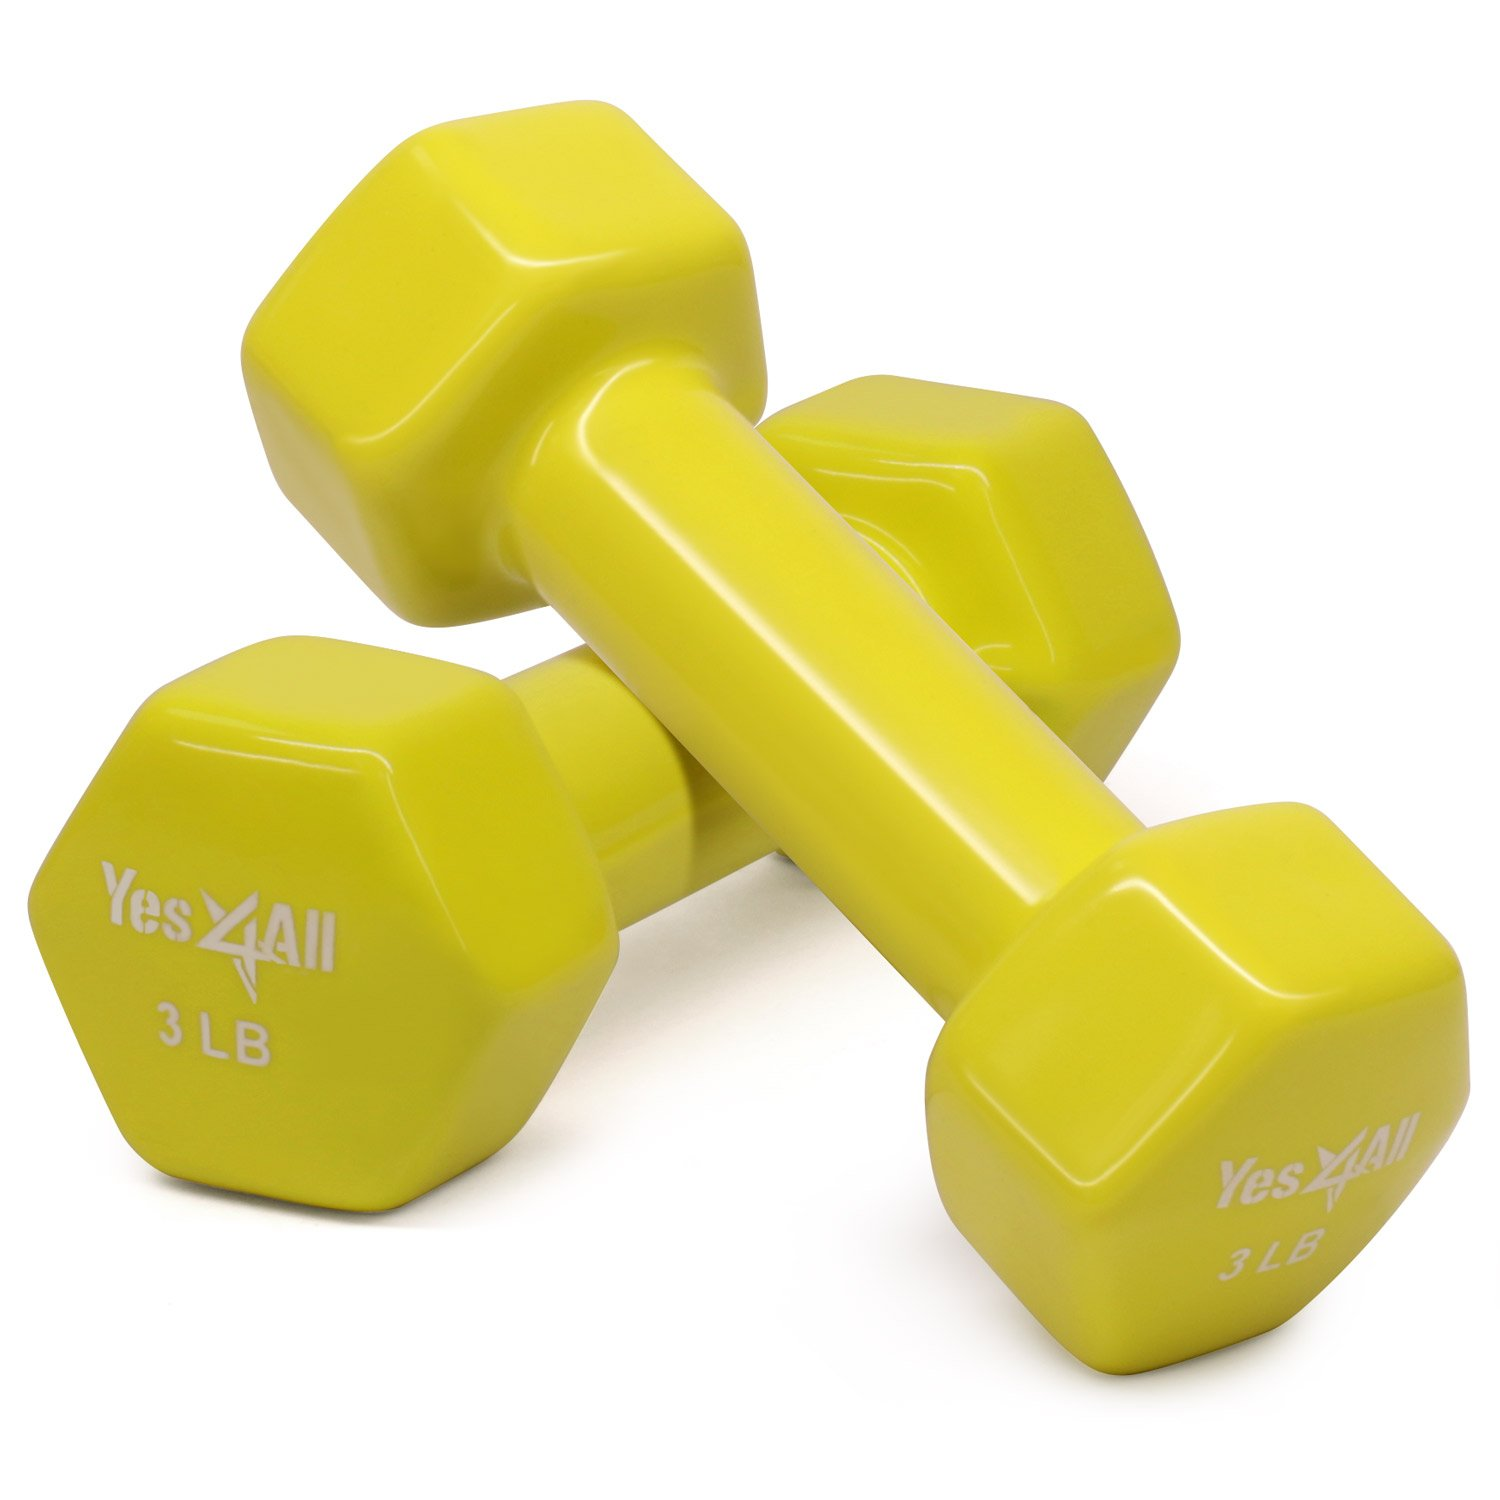 Yes4All Deluxe Vinyl Coated Cast Iron Dumbbell Weights - PVC Dumbbell Sets for a Total Body Workout (Sets of 2, Yellow, 3lbs)